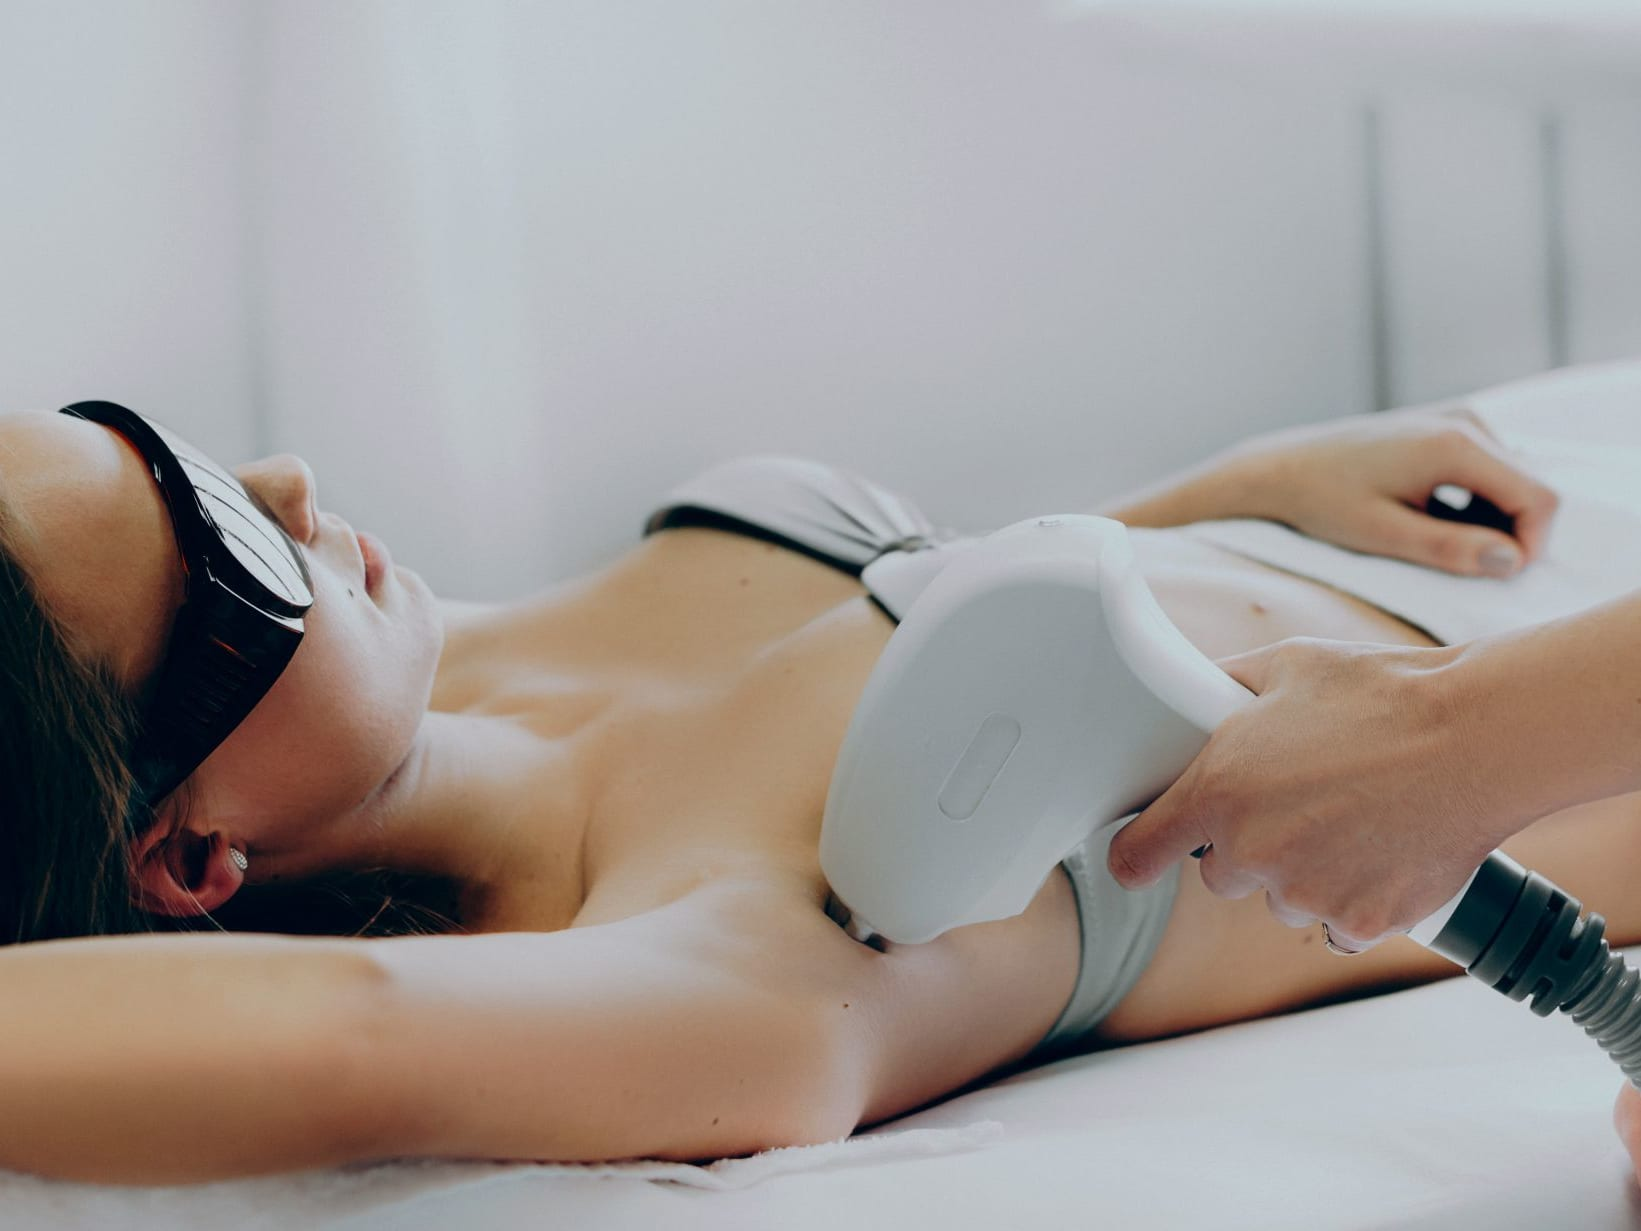 12 Sessions of Underarm SHR Hair Removal + 1 Session of Brightening Treatment for 1 Person